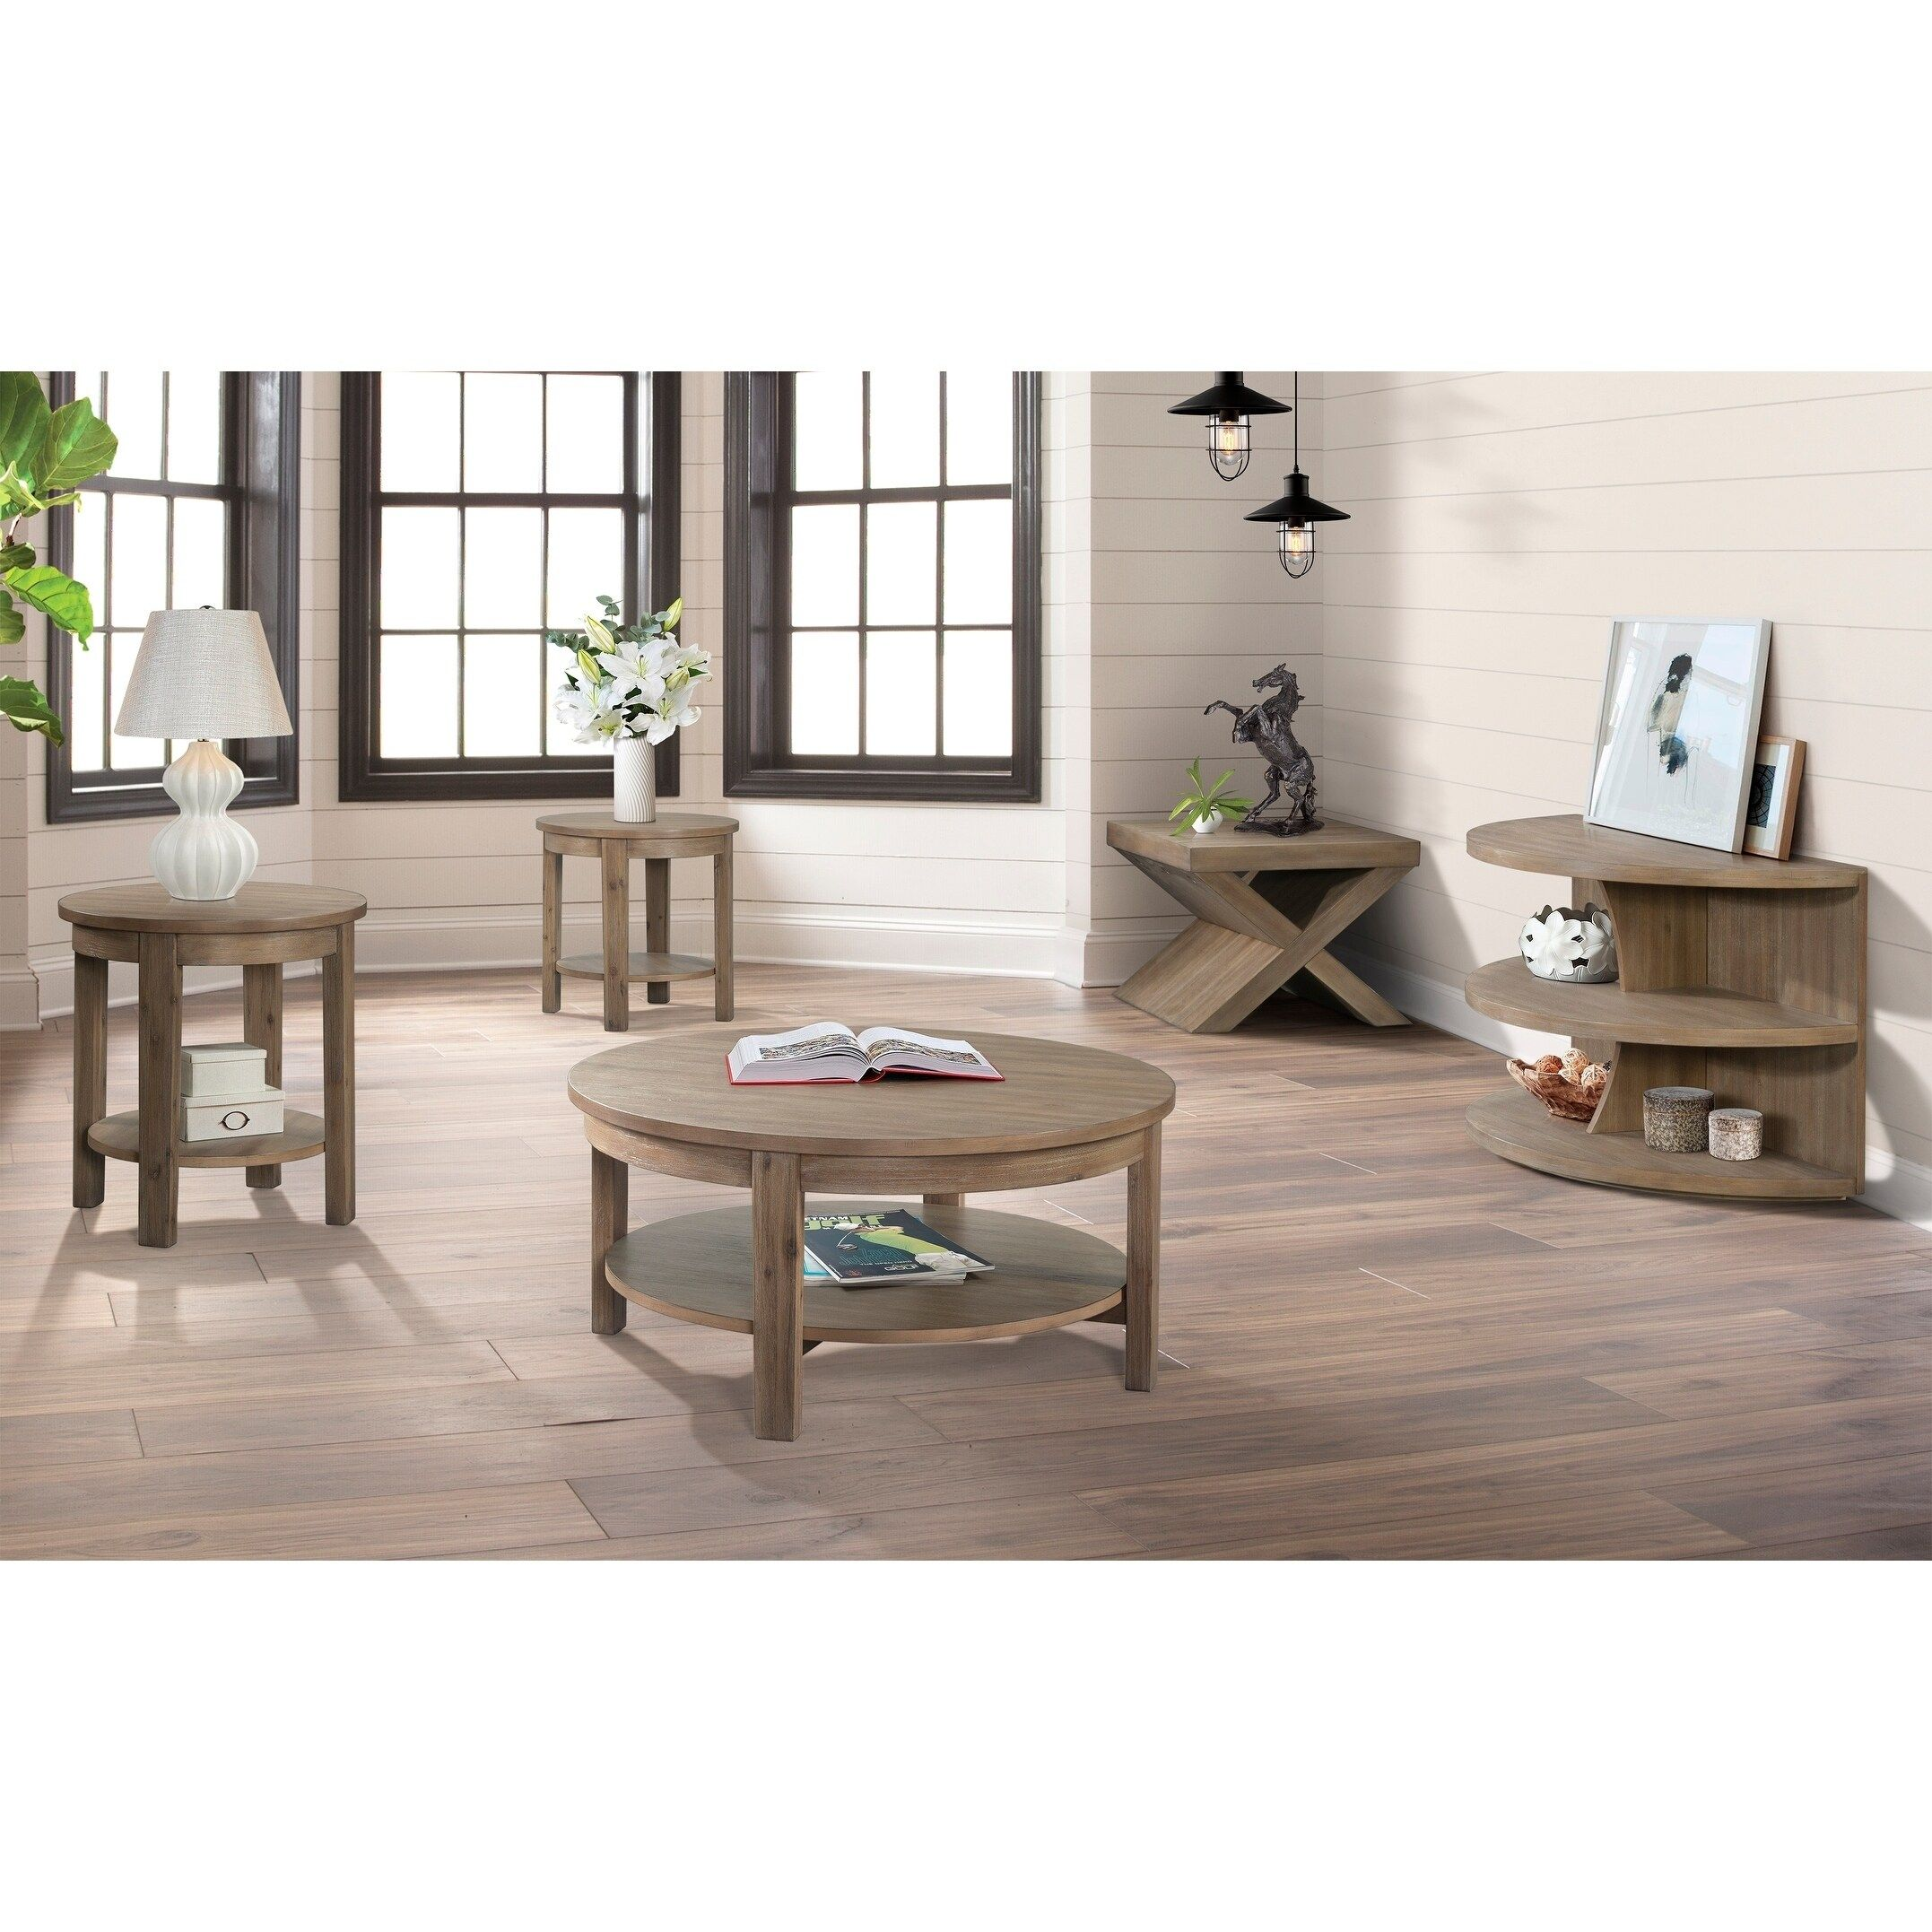 Our Best Living Room Furniture Deals In 2021 Coffee Table 4 Piece Coffee Table Set Rustic Living Room Furniture [ 2154 x 2154 Pixel ]